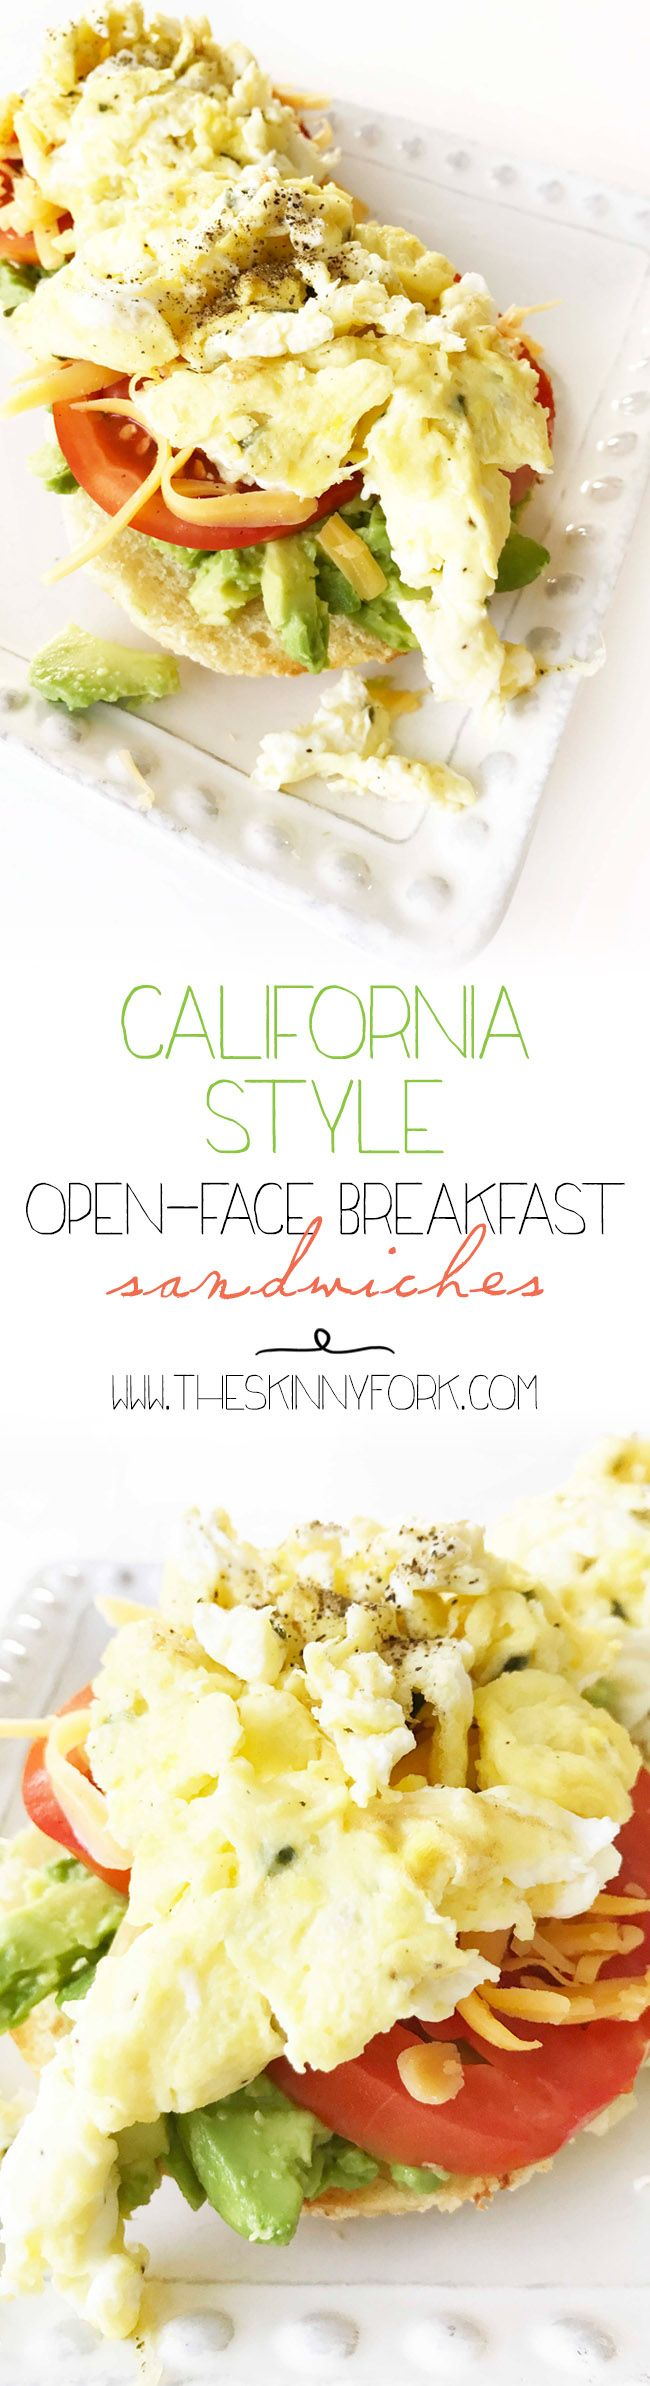 These California Style Open Face Breakfast Sandwiches are where it's at! Enjoy one of these sandwiches this weekend with a mimosa or two for brunch. TheSkinnyFork.com | Skinny & Healthy Recipes